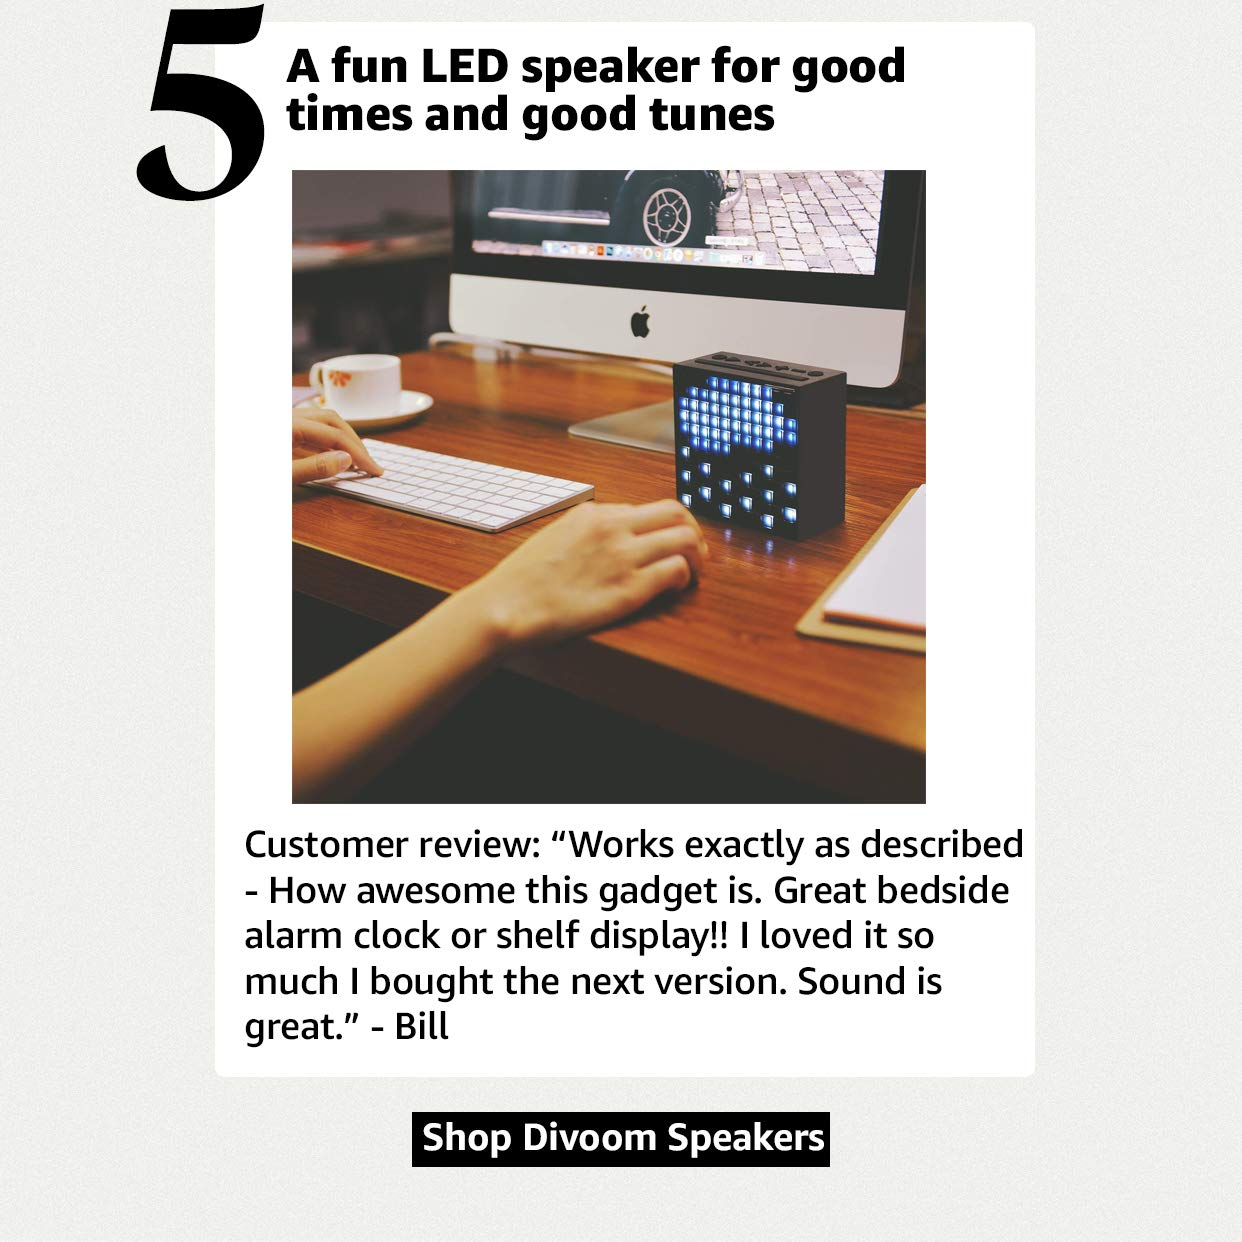 A fun LED speaker for good times and good tunes